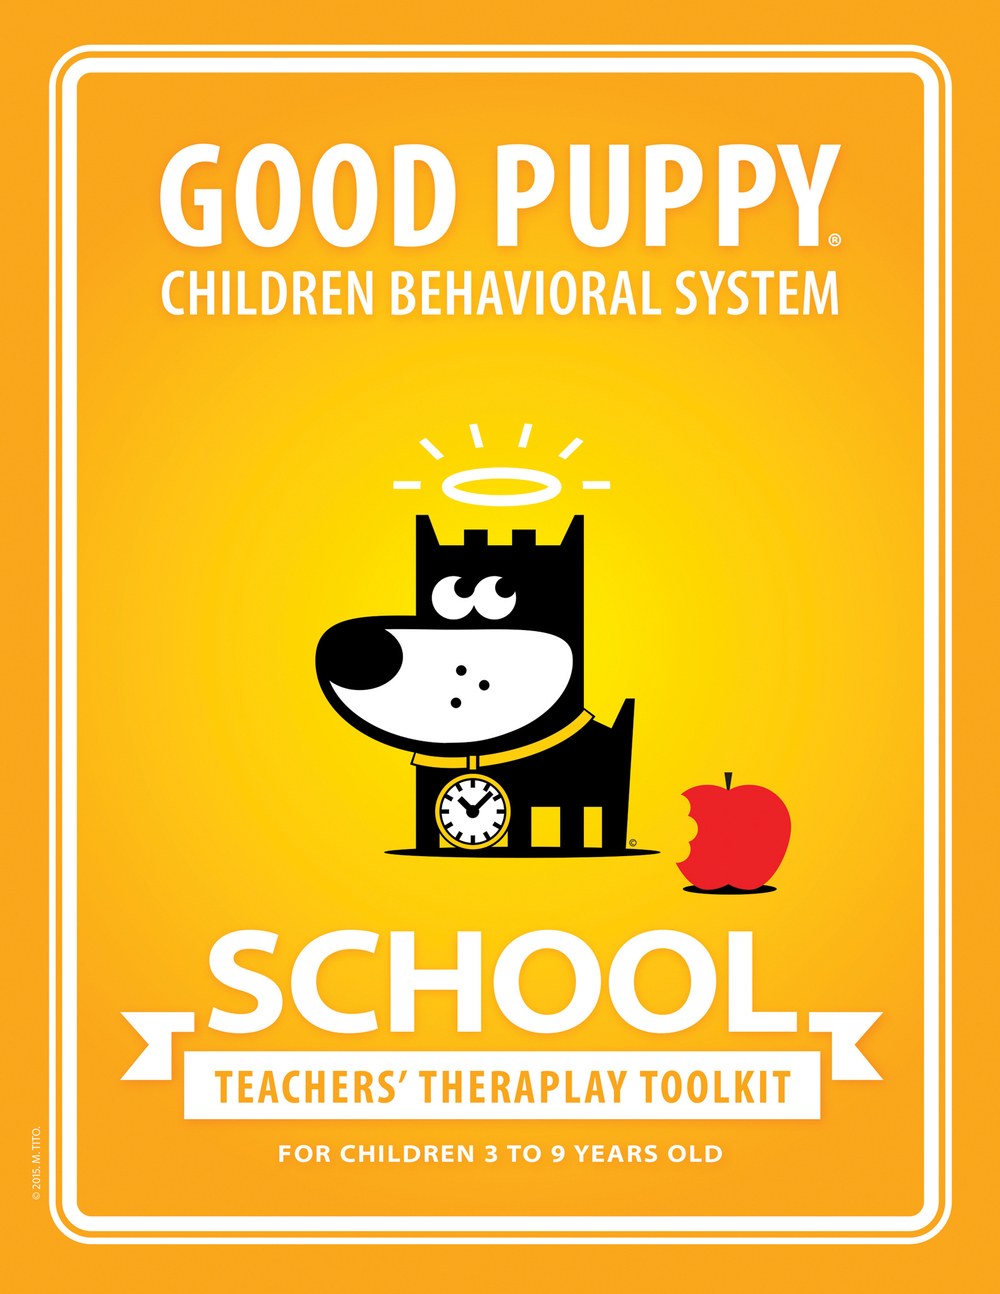 "SCHOOL   GOOD PUPPY® Children Behavioral System    Created by Marina Tito & Lorenzo Di Alessandro    Recommended for Teachers of Children Ages 3 - 9   Publisher:  Good Puppy  Website:  goodpuppy.com  Email: books@goodpuppy.com  Publication Date: July, 2015 Language: English   Softcover edition   ISBN-13: 978-1-940692-33-3 ISBN-10: 1940692333  8.5"" x 11"" 70 pages   Printable PDF edition   ISBN-13: 978-1-940692-36-4 ISBN-10: 1940692364  8.5"" x 11"" 70 pages"